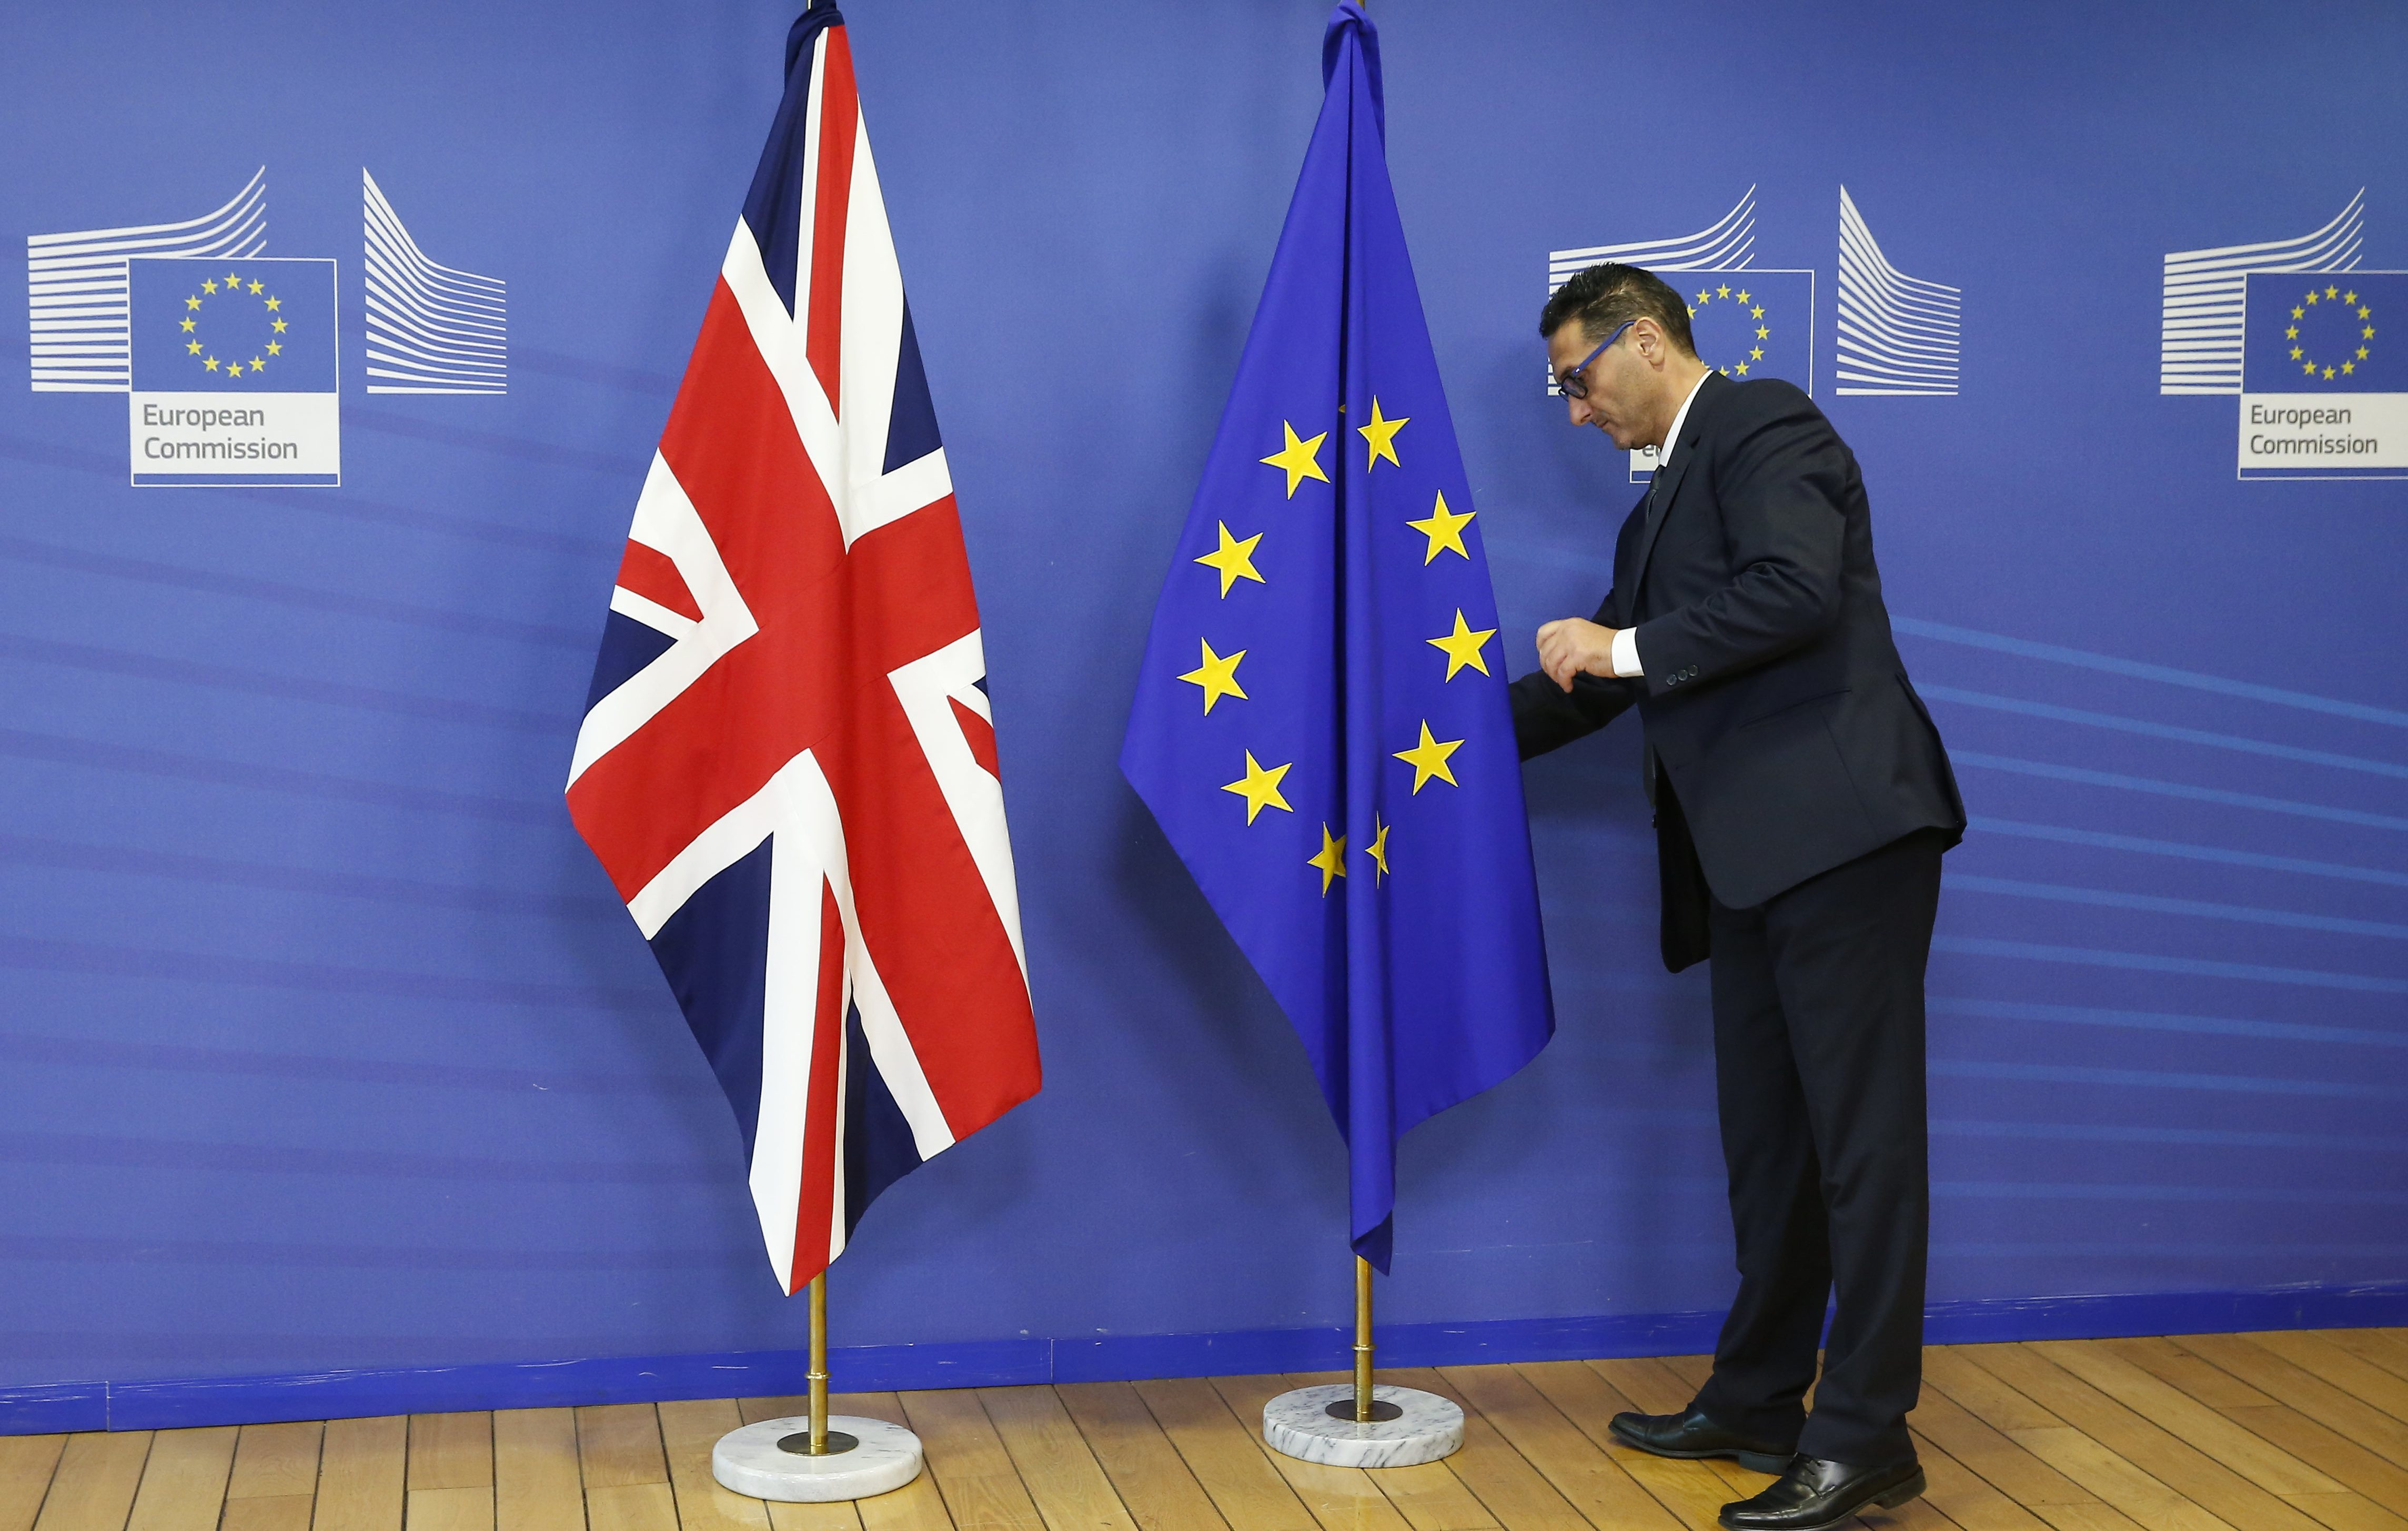 A employee of the EU Commission arranges the British Union flag and the European Union flag.